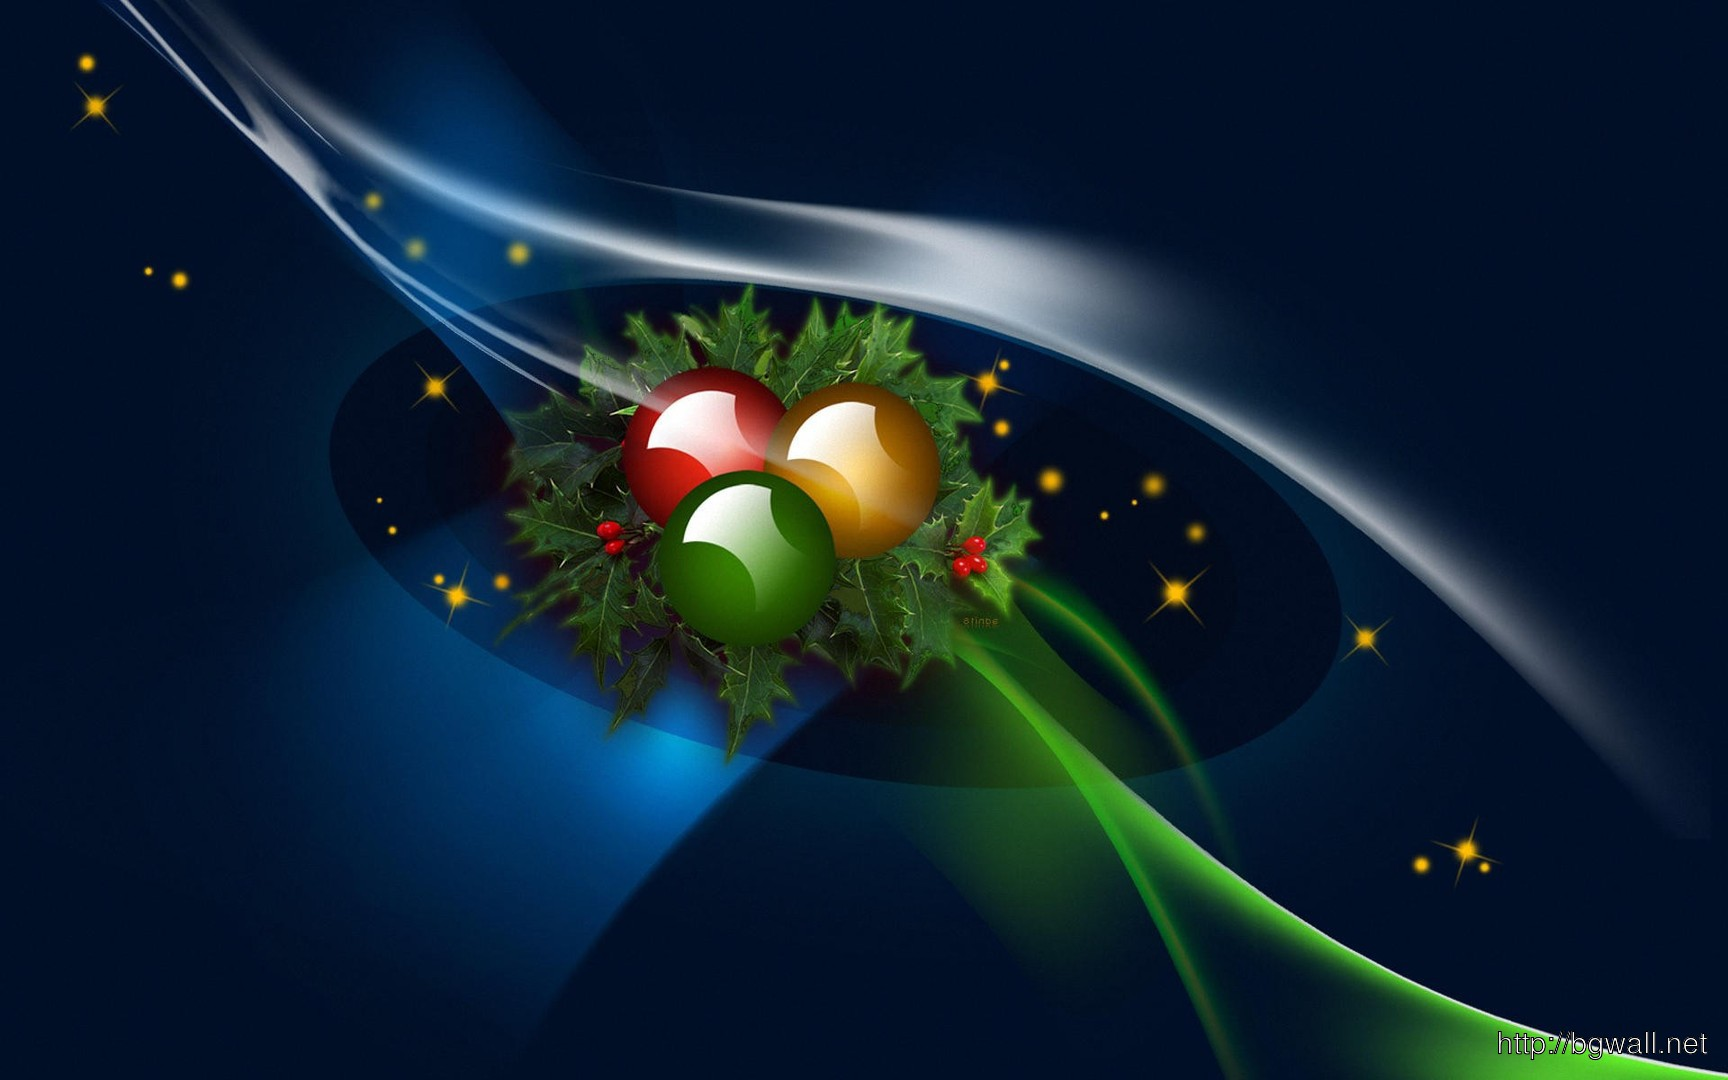 Download Christmas Wreath Wallpaper Full